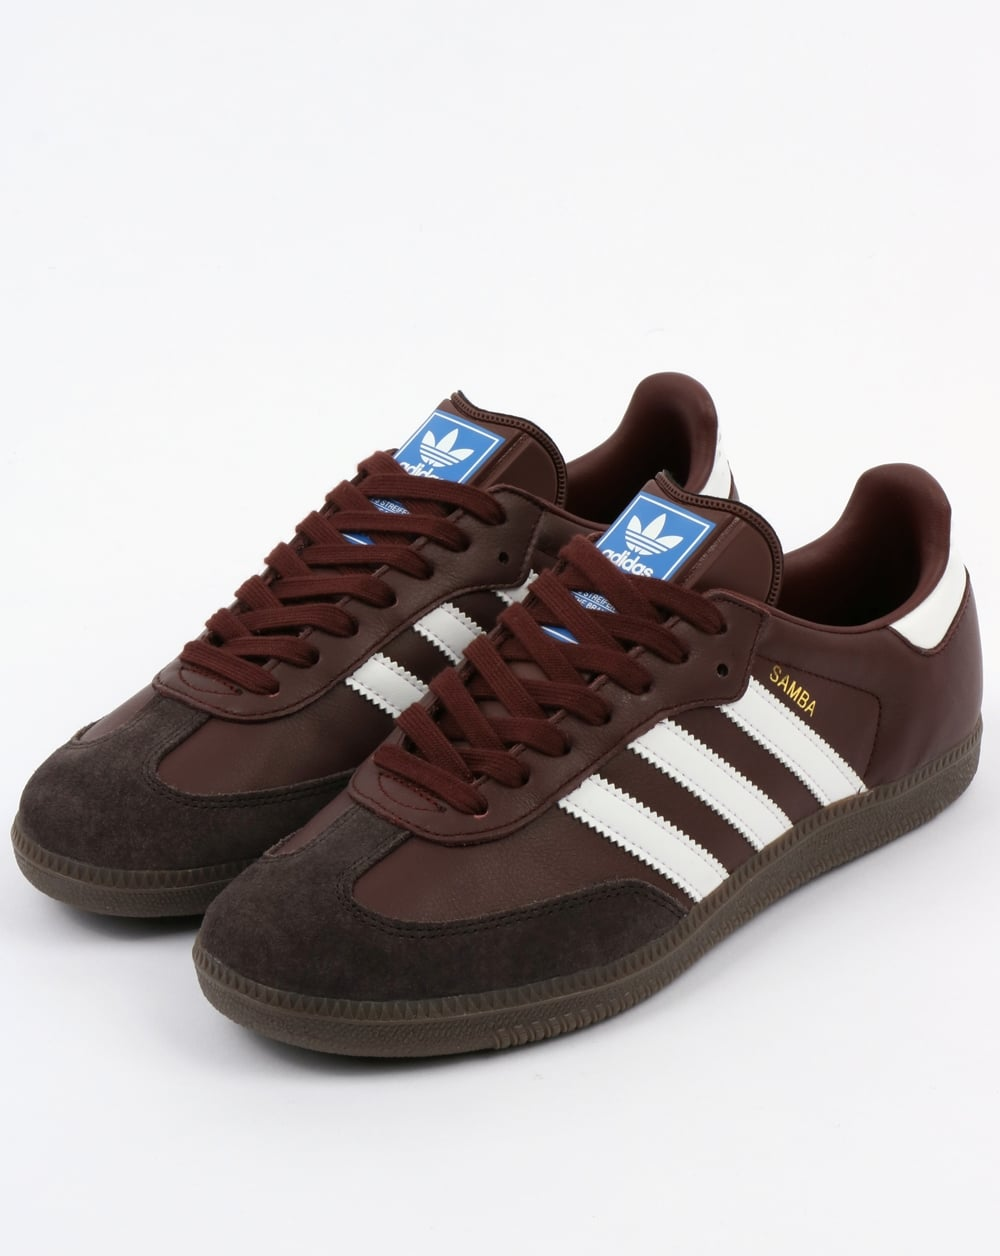 Adidas Samba Trainers Mystery Brown